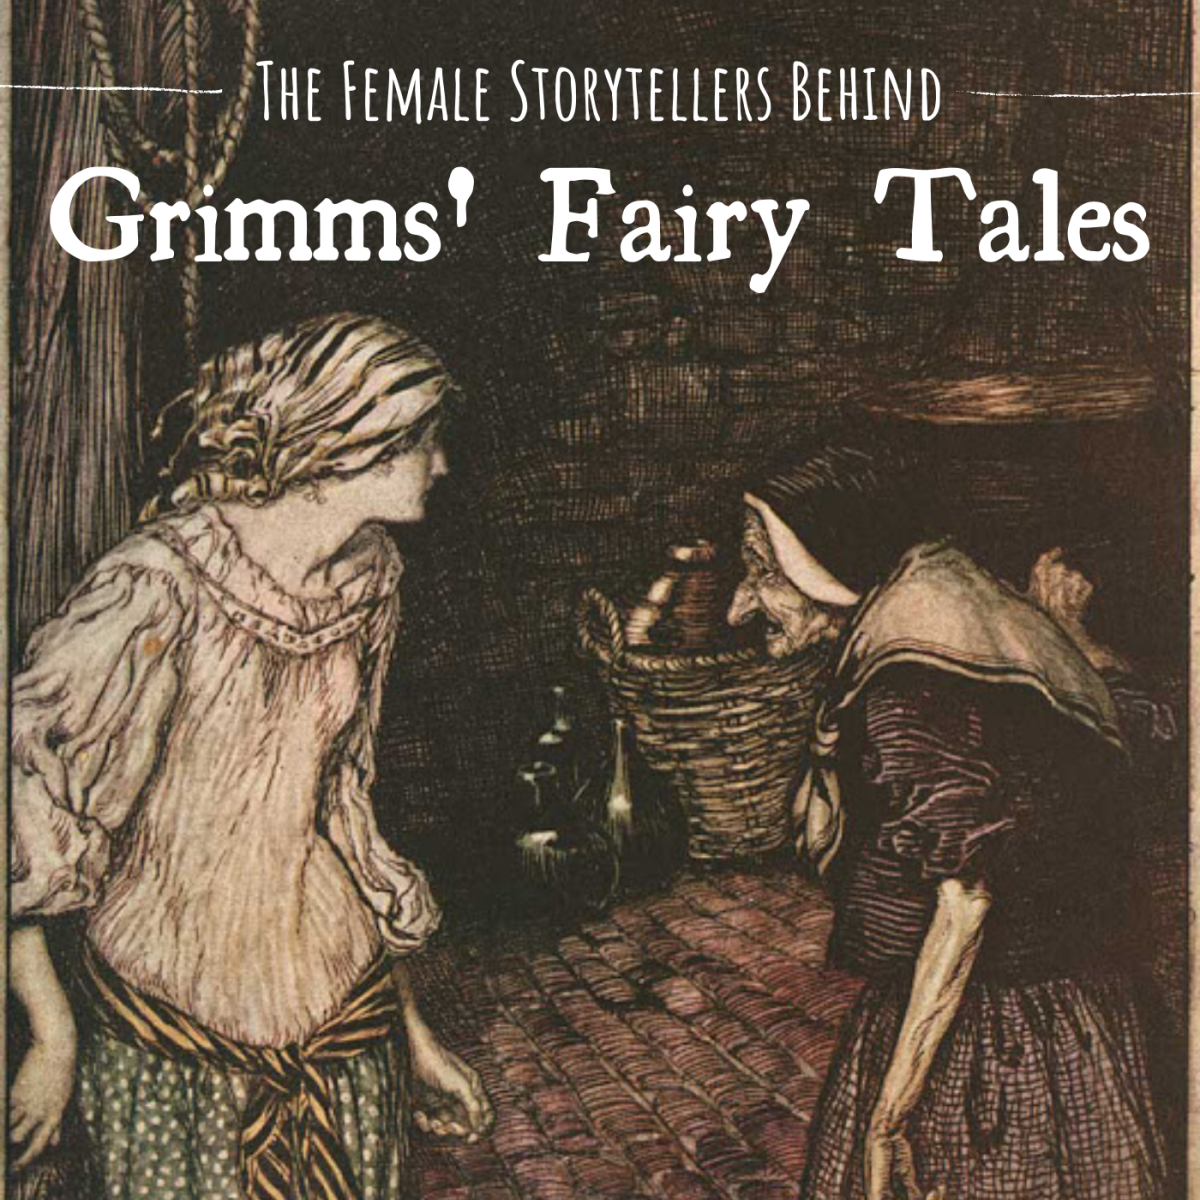 Did you know that manny of the Grimm Brothers' best-known fairy tales were shared with them by various women they and their sister met and interviewed?